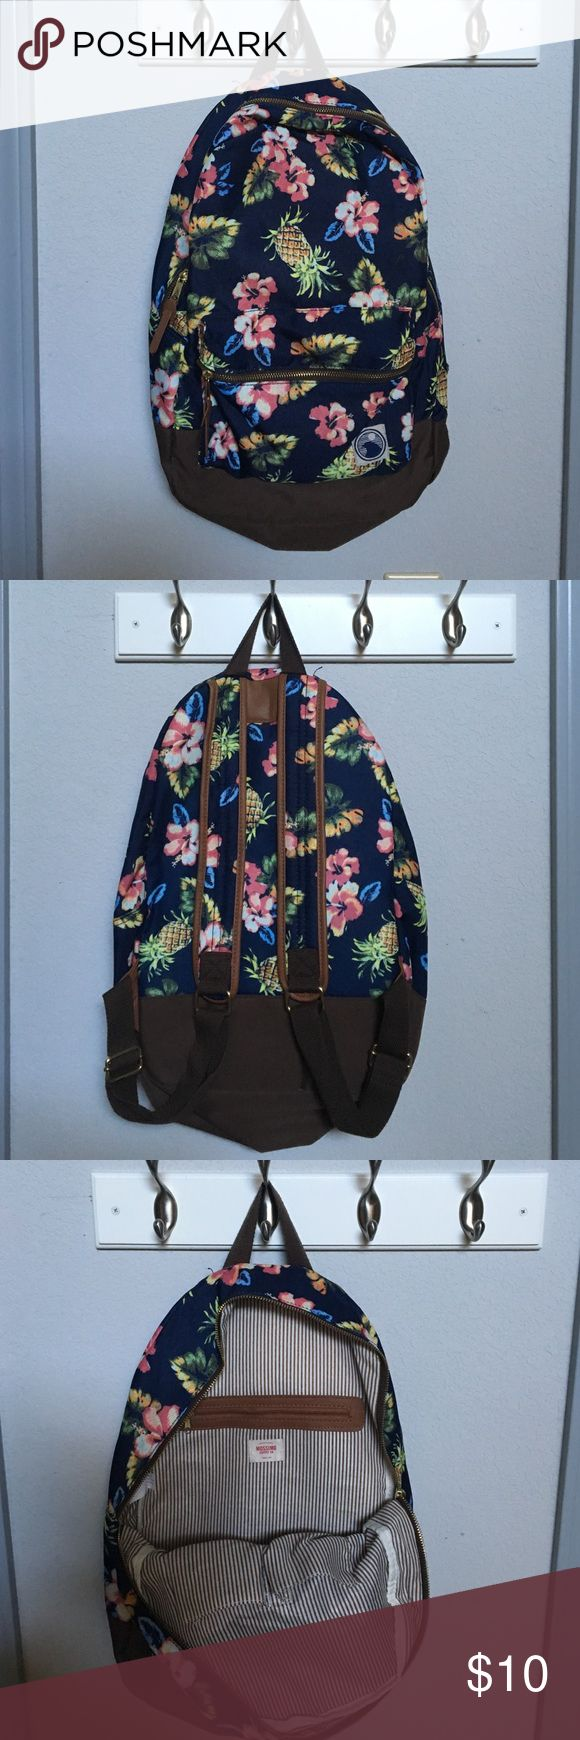 Mossimo Supply Co Tropical Print Backpack Mossimo backpack, used once, in perfect condition. Front and inside zipper pockets. Mossimo Supply Co Bags Backpacks